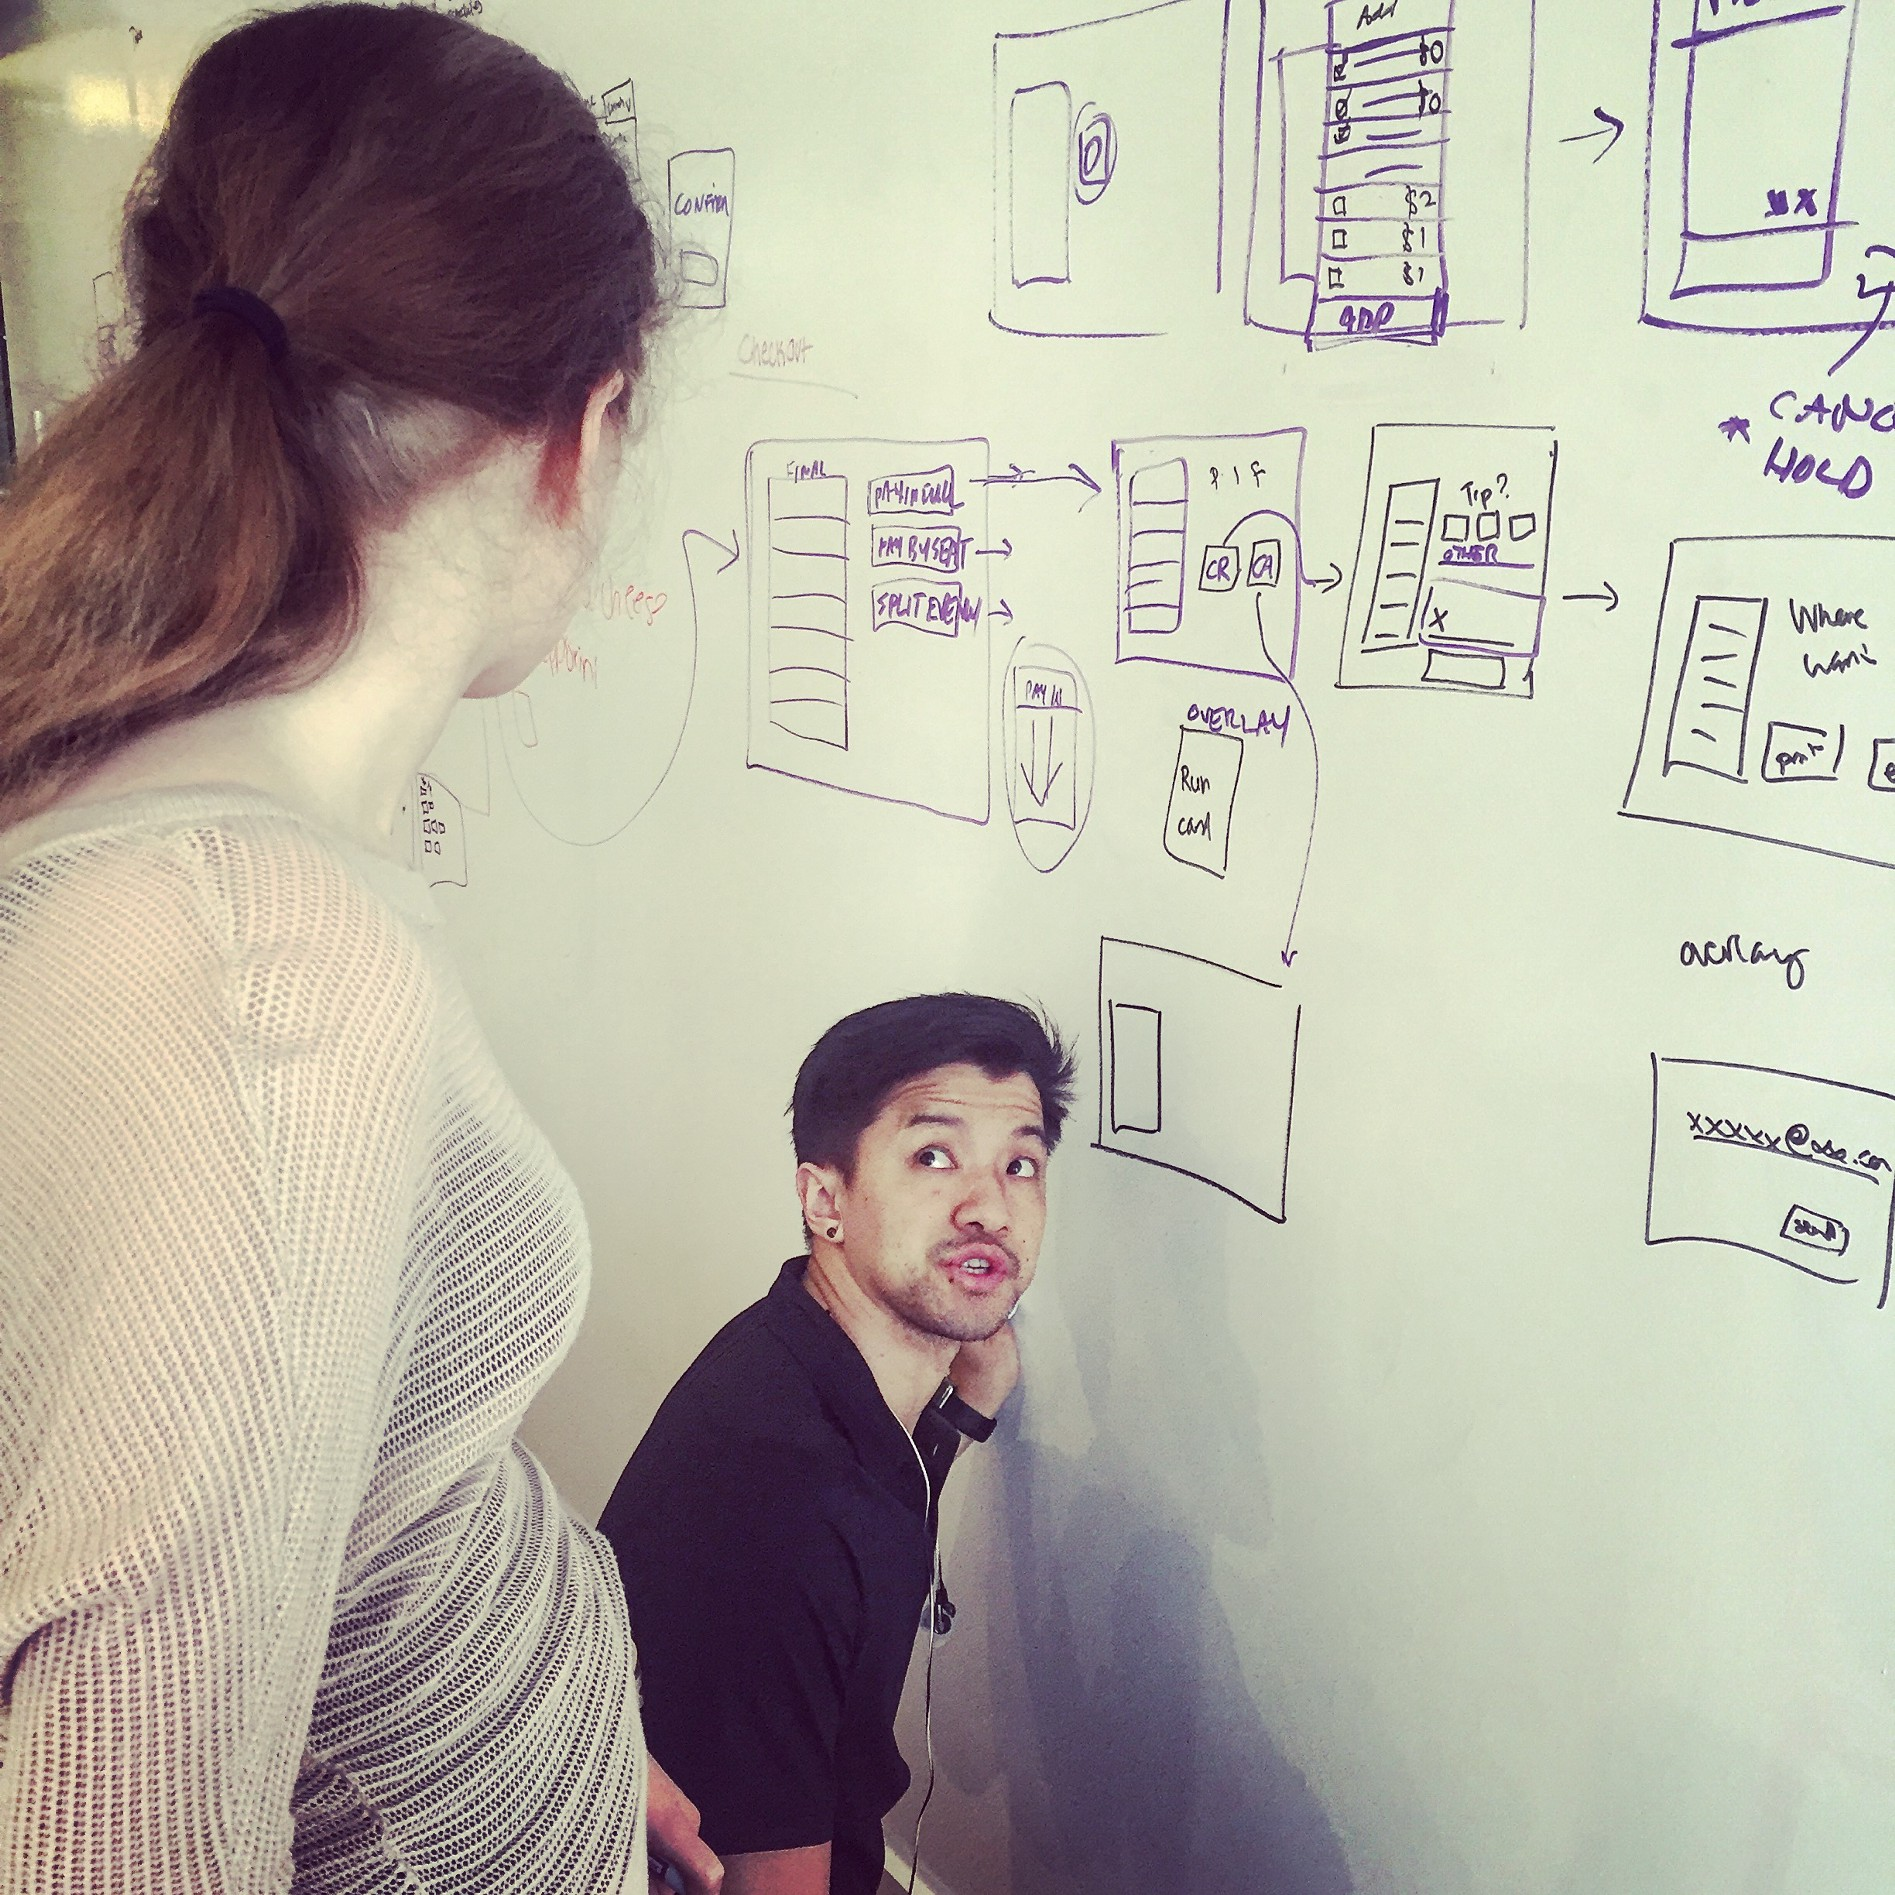 Smriti, left, and Chris sketch out design ideas for the new app. Below, all my sketches for the app.